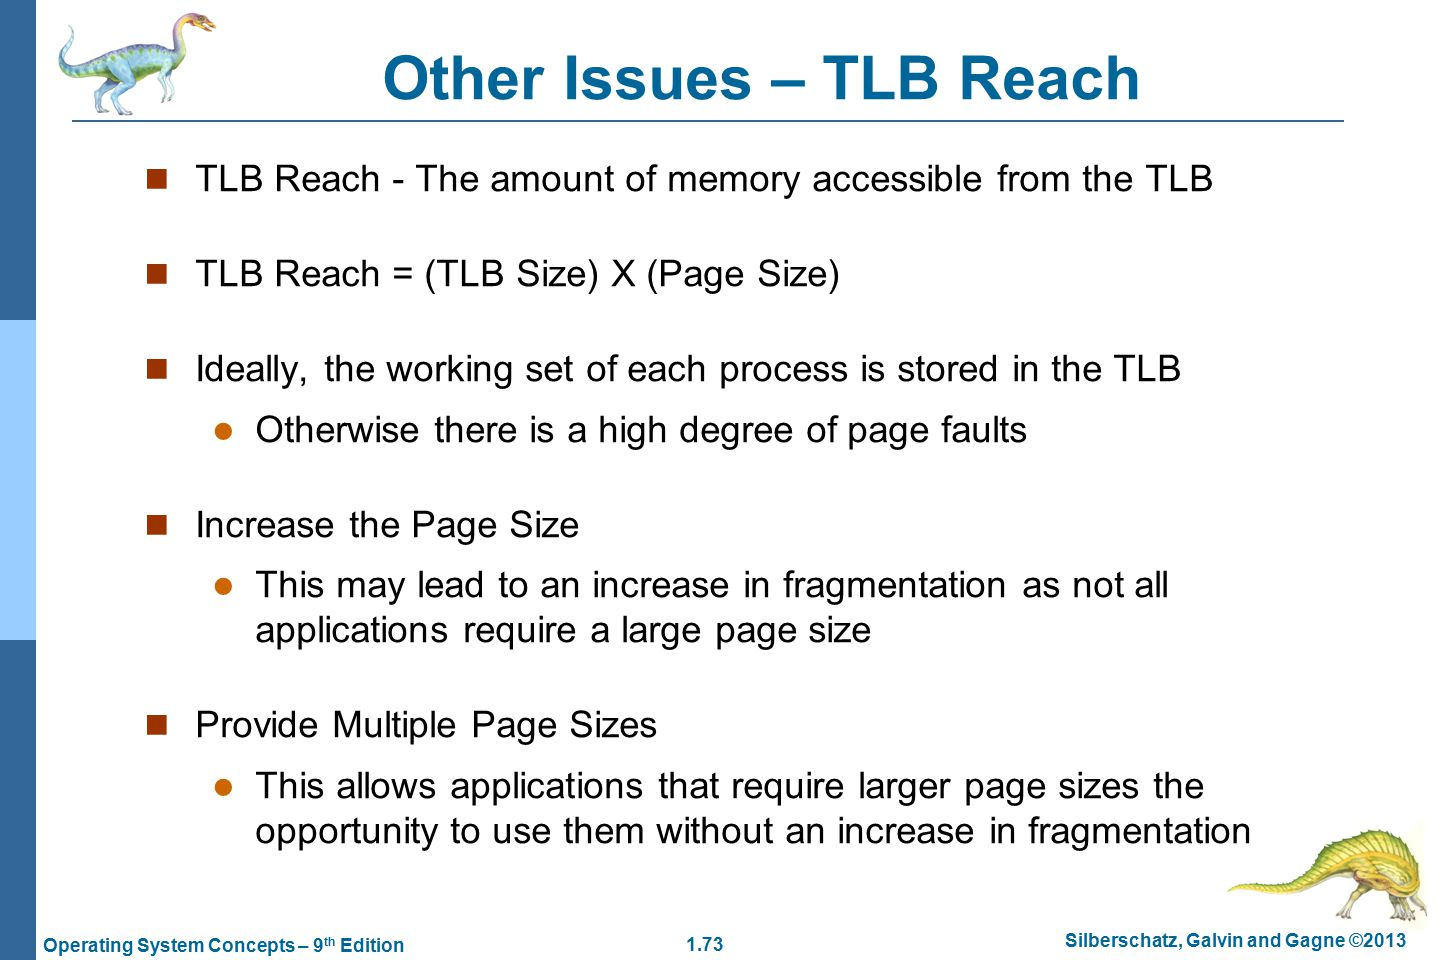 1.73 Silberschatz, Galvin and Gagne ©2013 Operating System Concepts – 9 th Edition Other Issues – TLB Reach TLB Reach - The amount of memory accessible from the TLB TLB Reach = (TLB Size) X (Page Size) Ideally, the working set of each process is stored in the TLB Otherwise there is a high degree of page faults Increase the Page Size This may lead to an increase in fragmentation as not all applications require a large page size Provide Multiple Page Sizes This allows applications that require larger page sizes the opportunity to use them without an increase in fragmentation